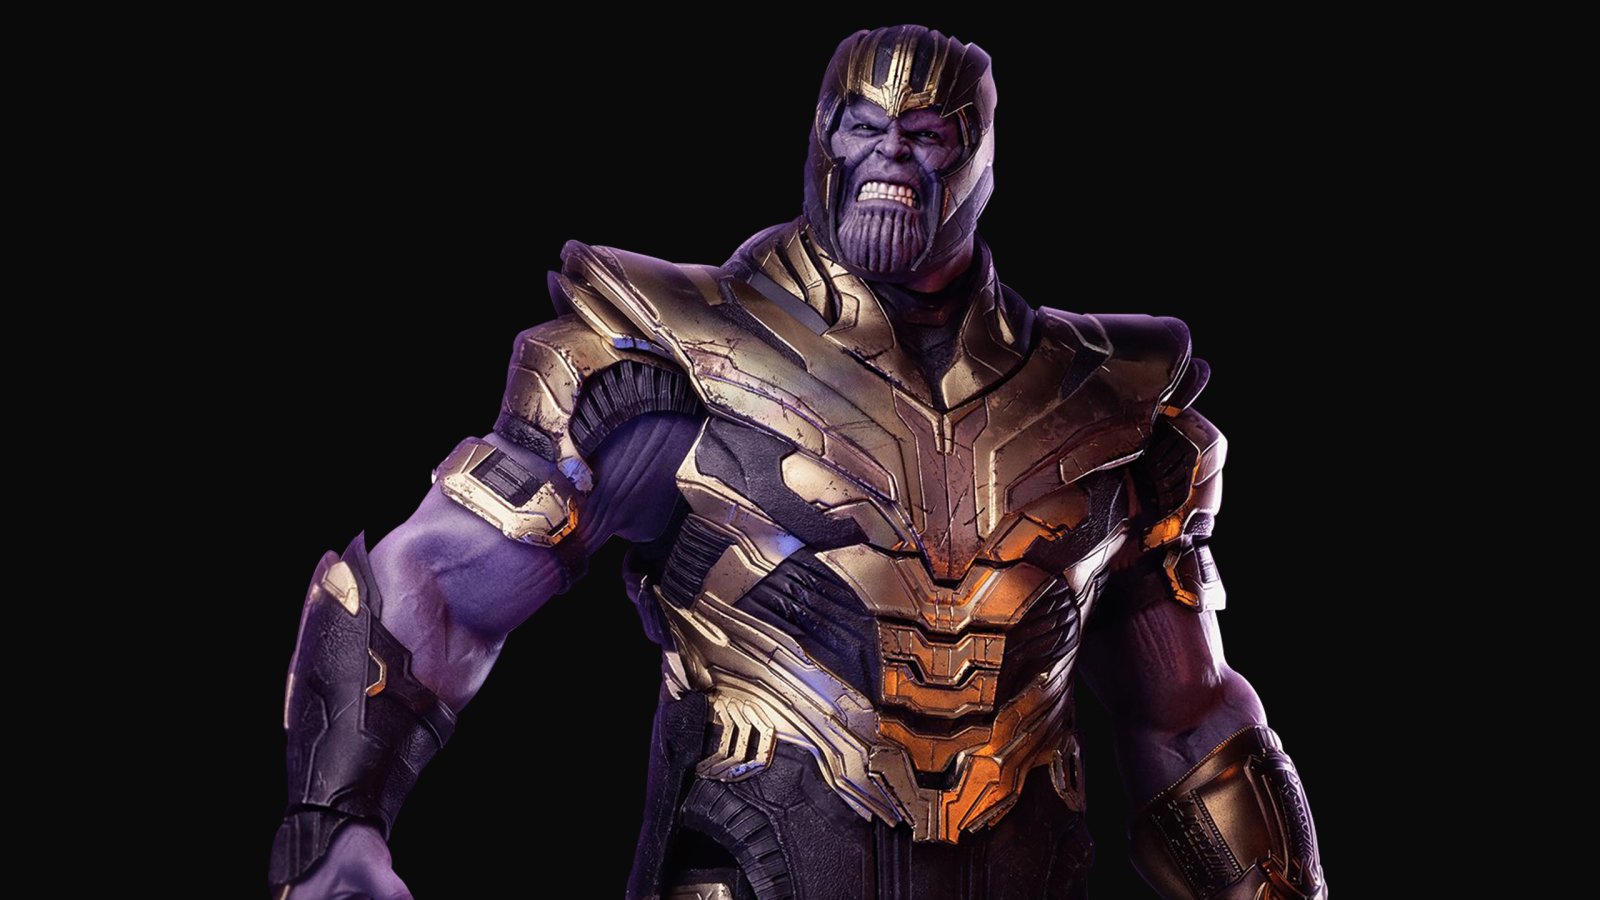 1600x900 Thanos In Avengers Endgame 1600x900 Resolution